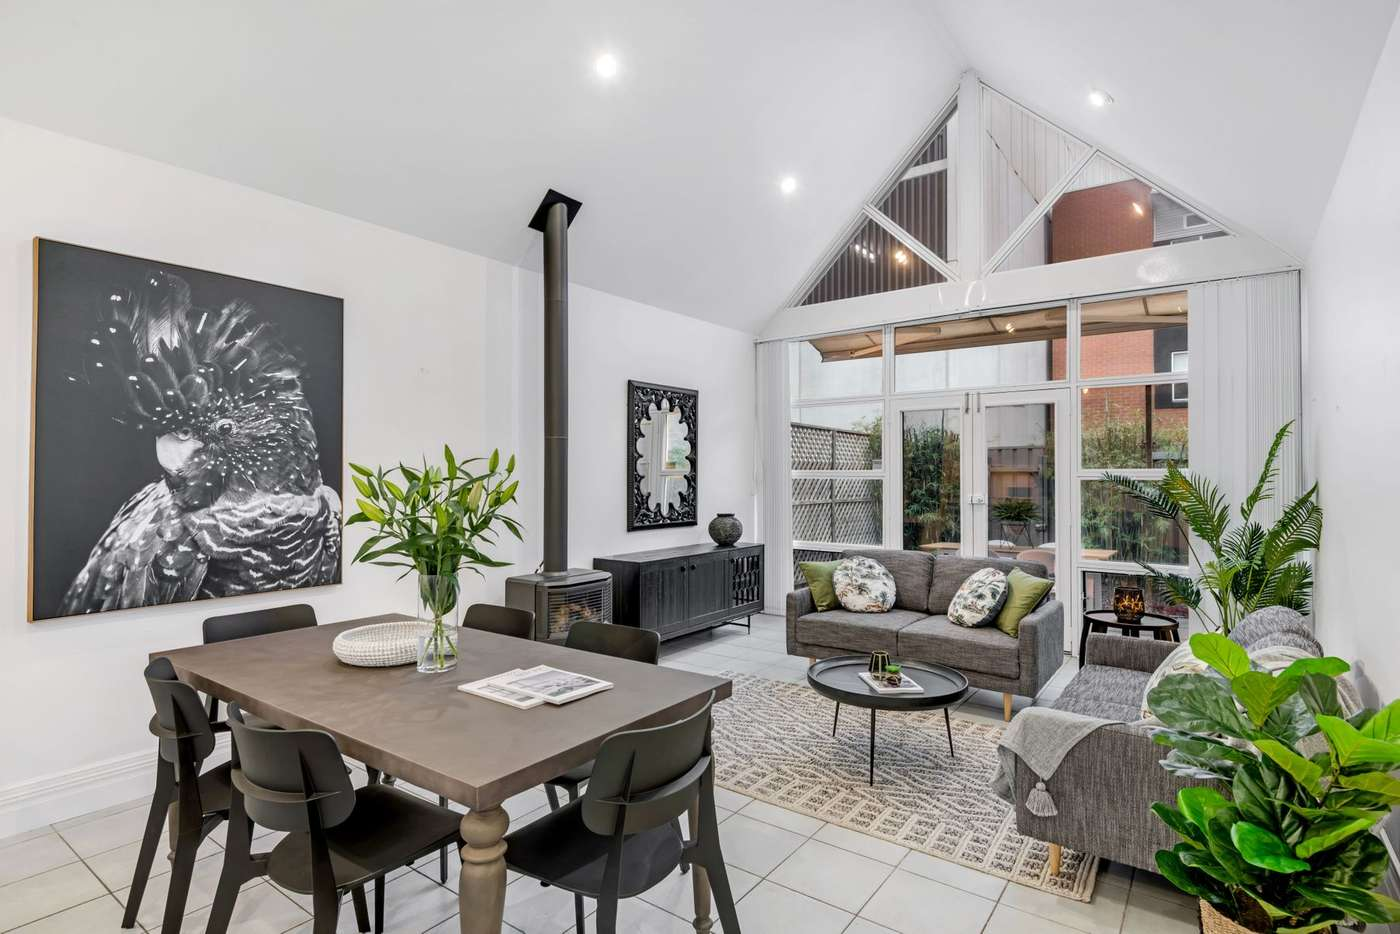 Main view of Homely house listing, 17 Wright Court, Adelaide SA 5000